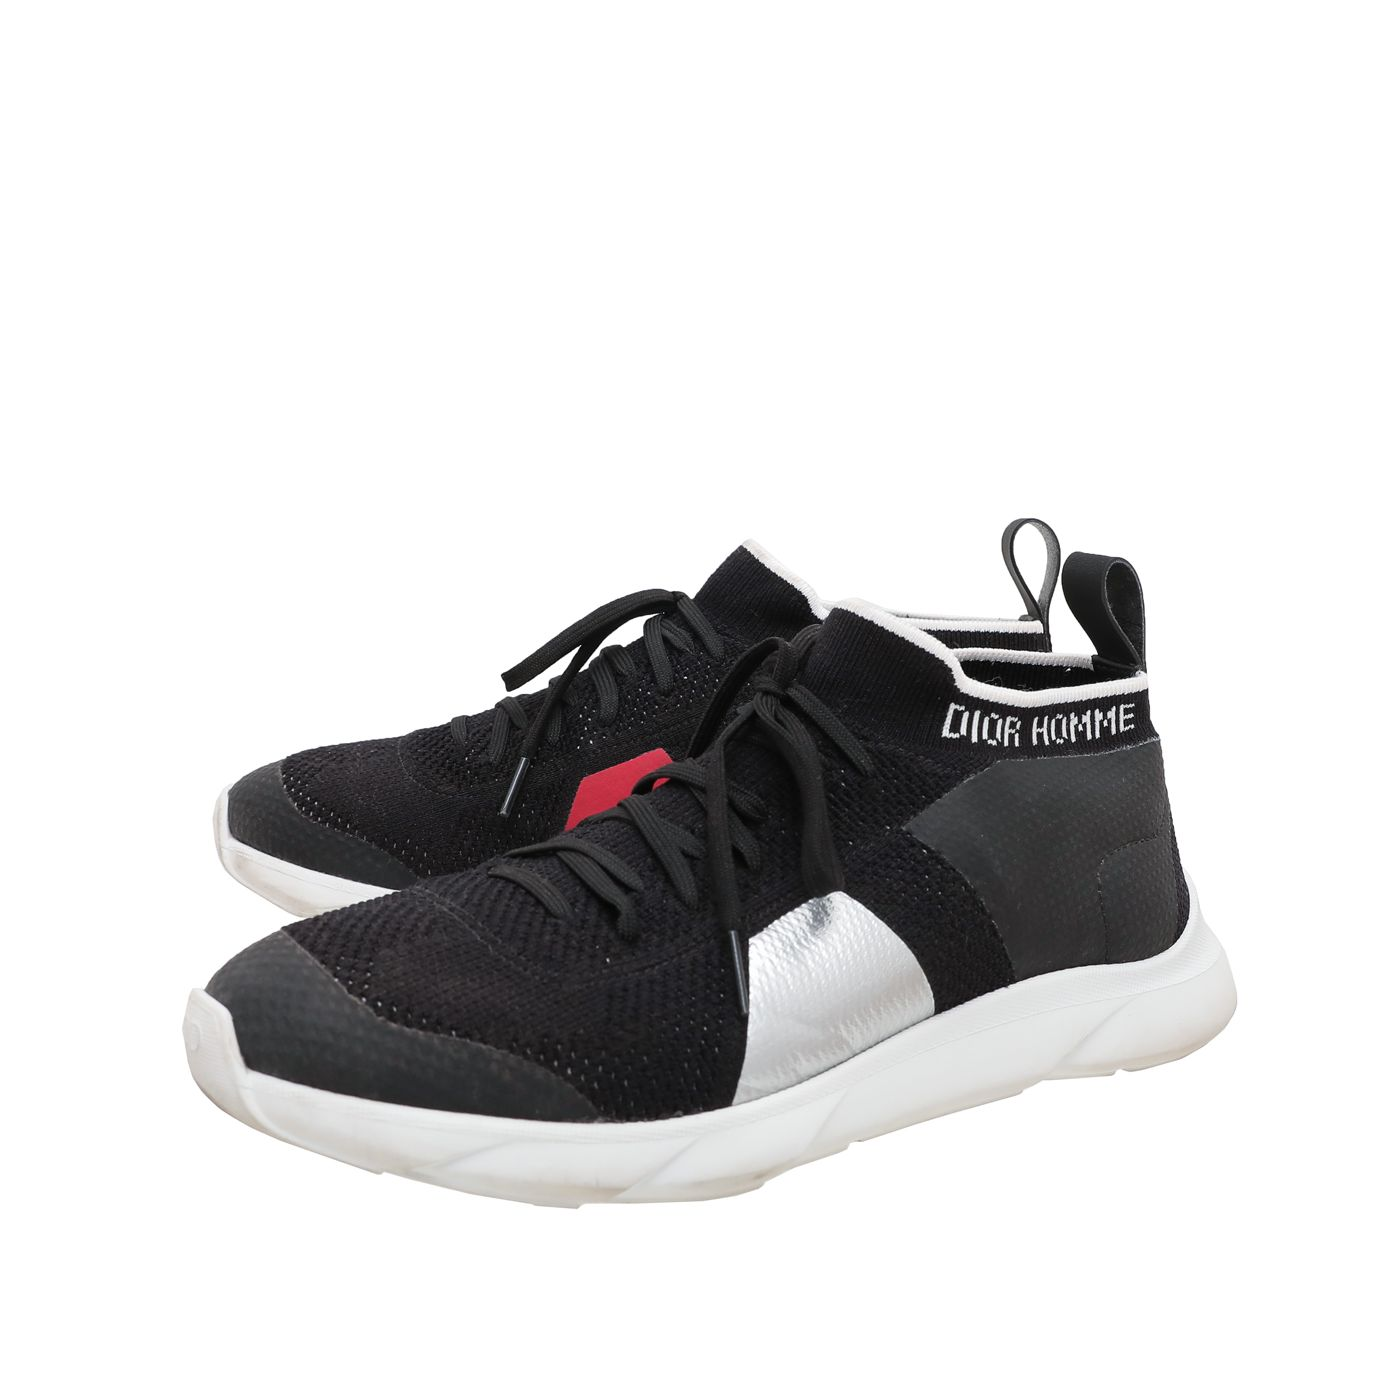 Christian Dior Bicolor Homme Sock Sneakers 41